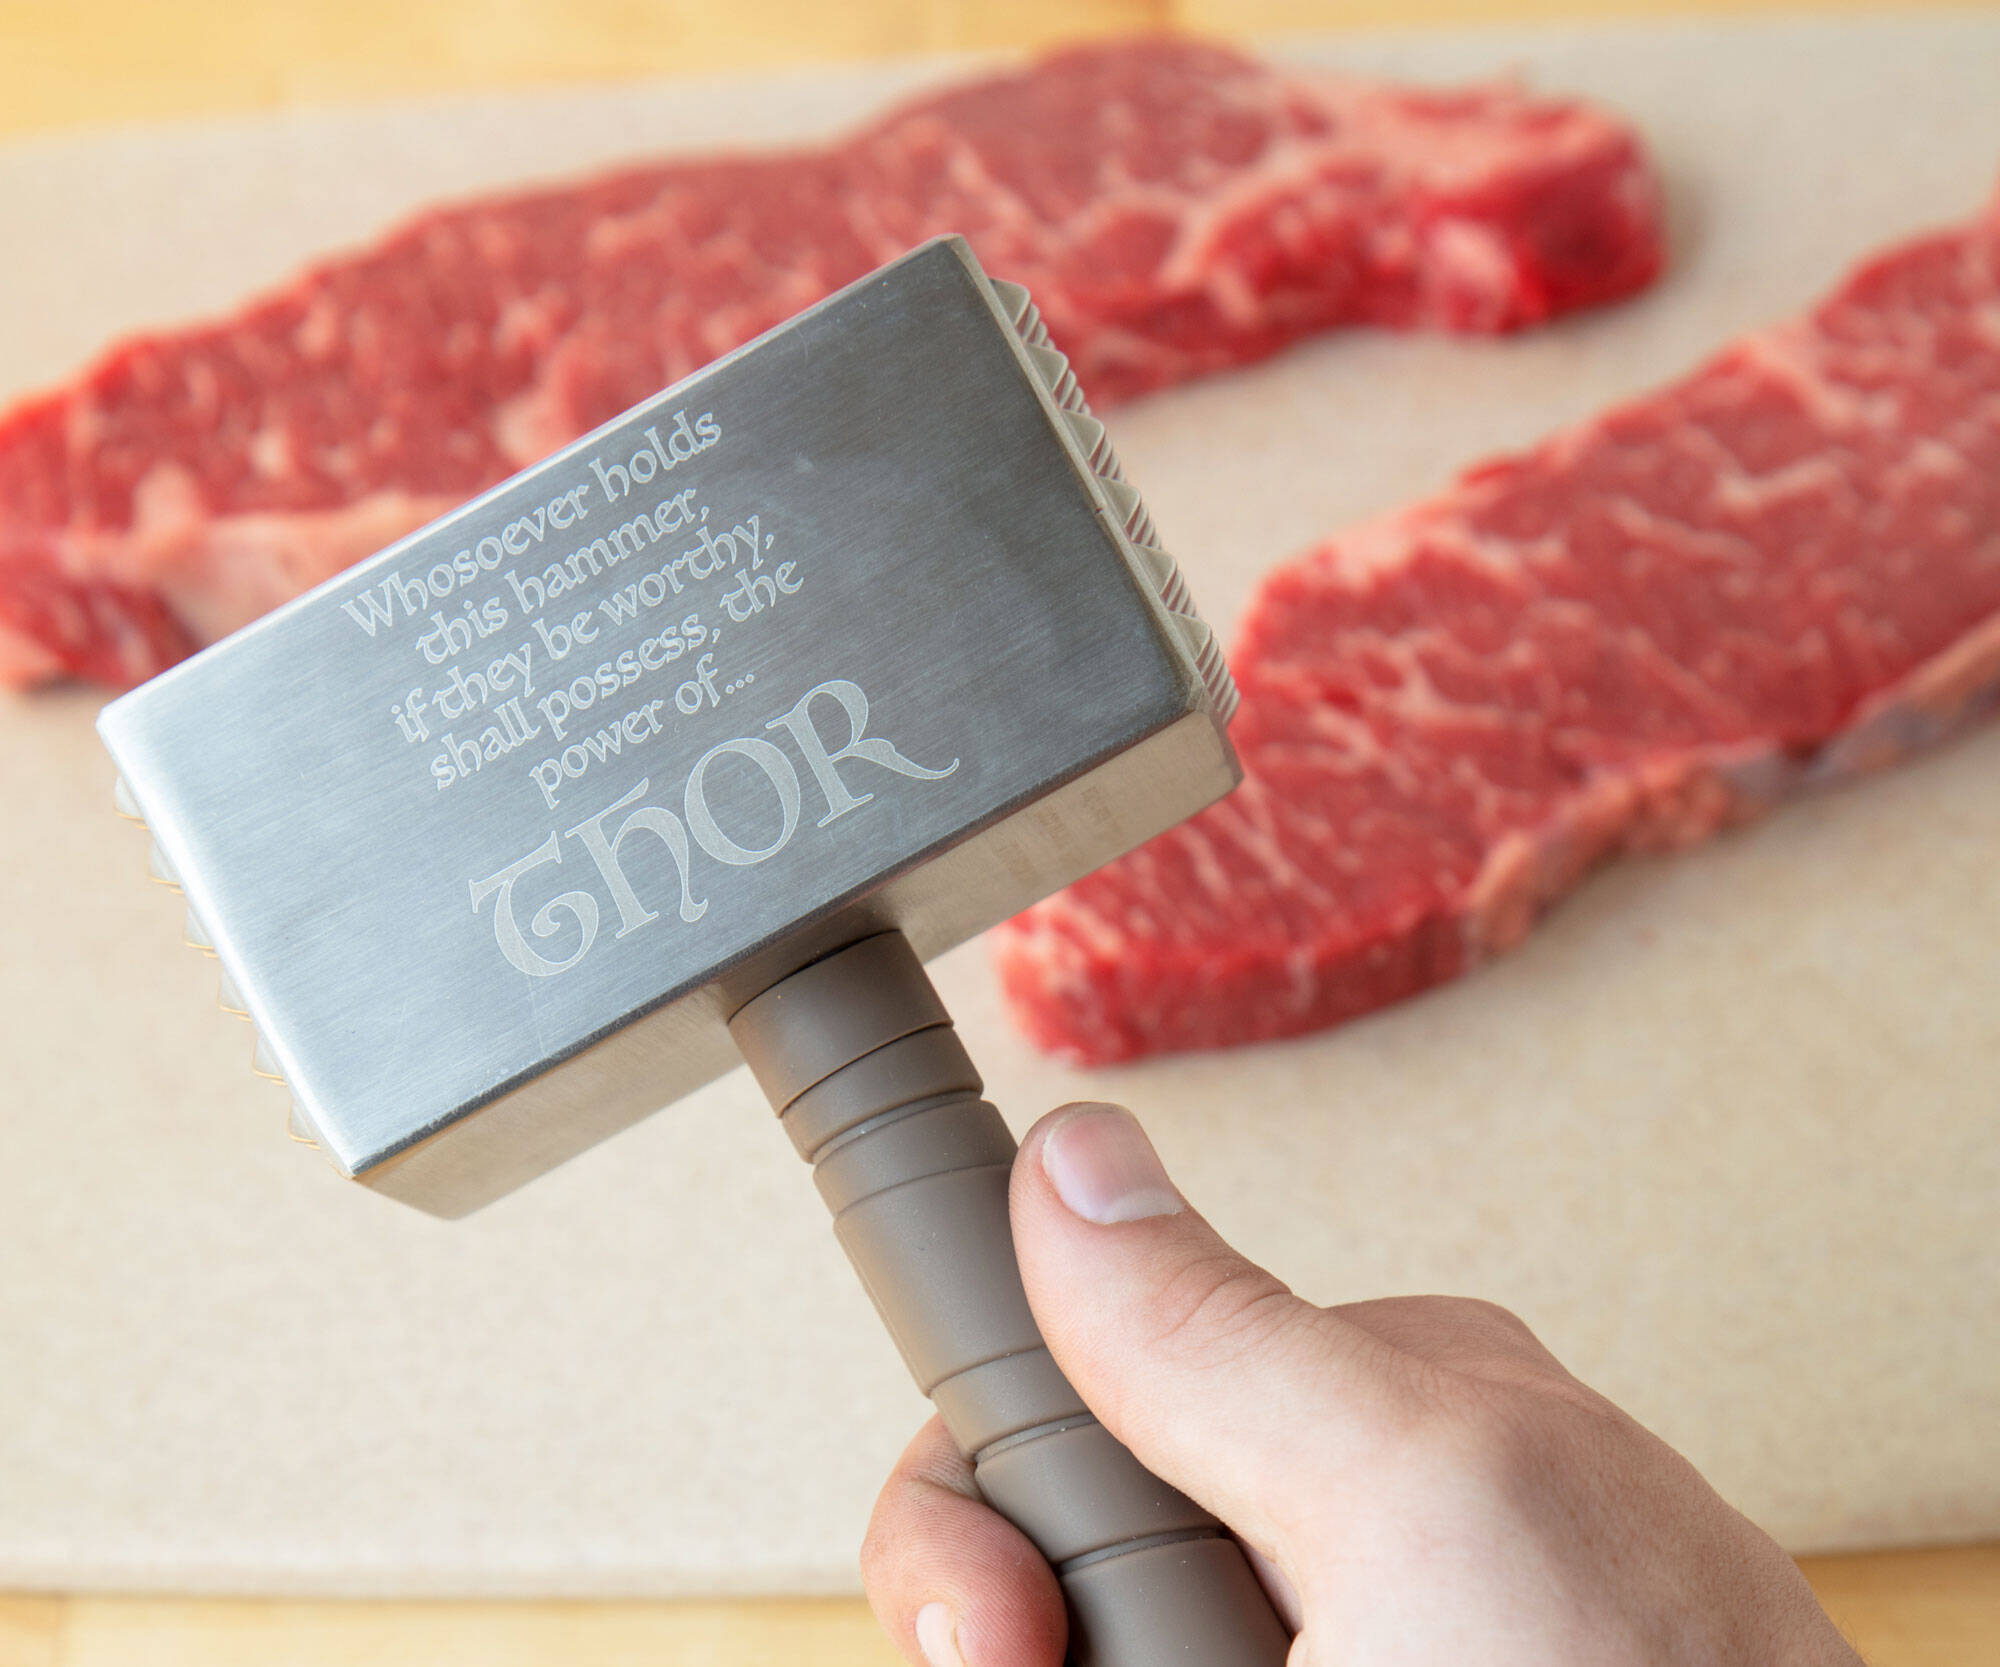 Thor's Hammer Meat Tenderizer - http://coolthings.us